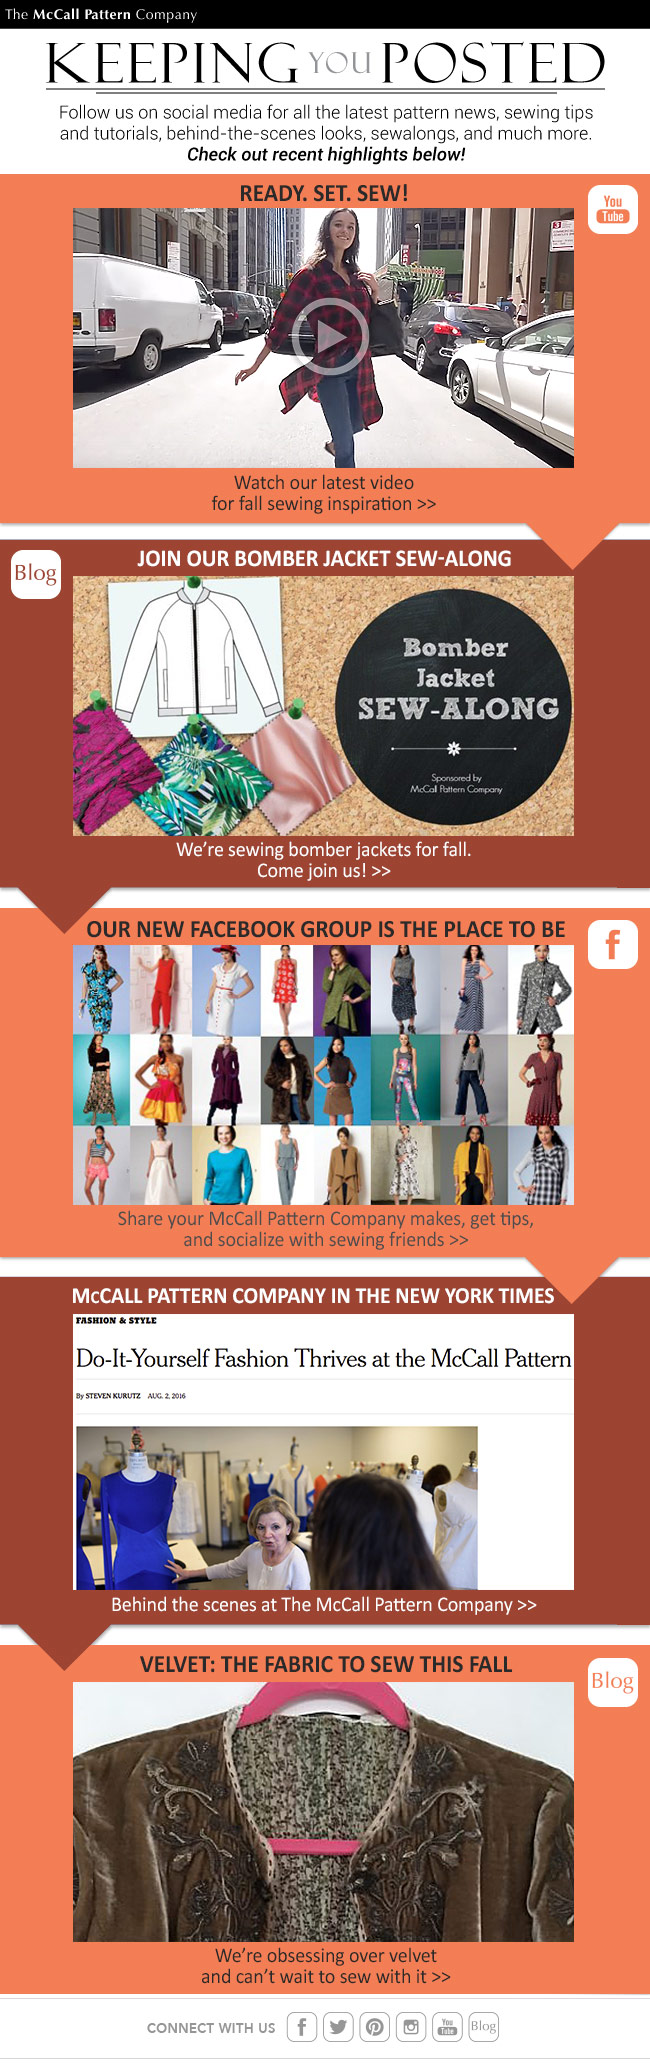 The mccall pattern company social media please add mccallsmccallpattern also the from in the email to your email address book to ensure deliveries to your inbox solutioingenieria Image collections